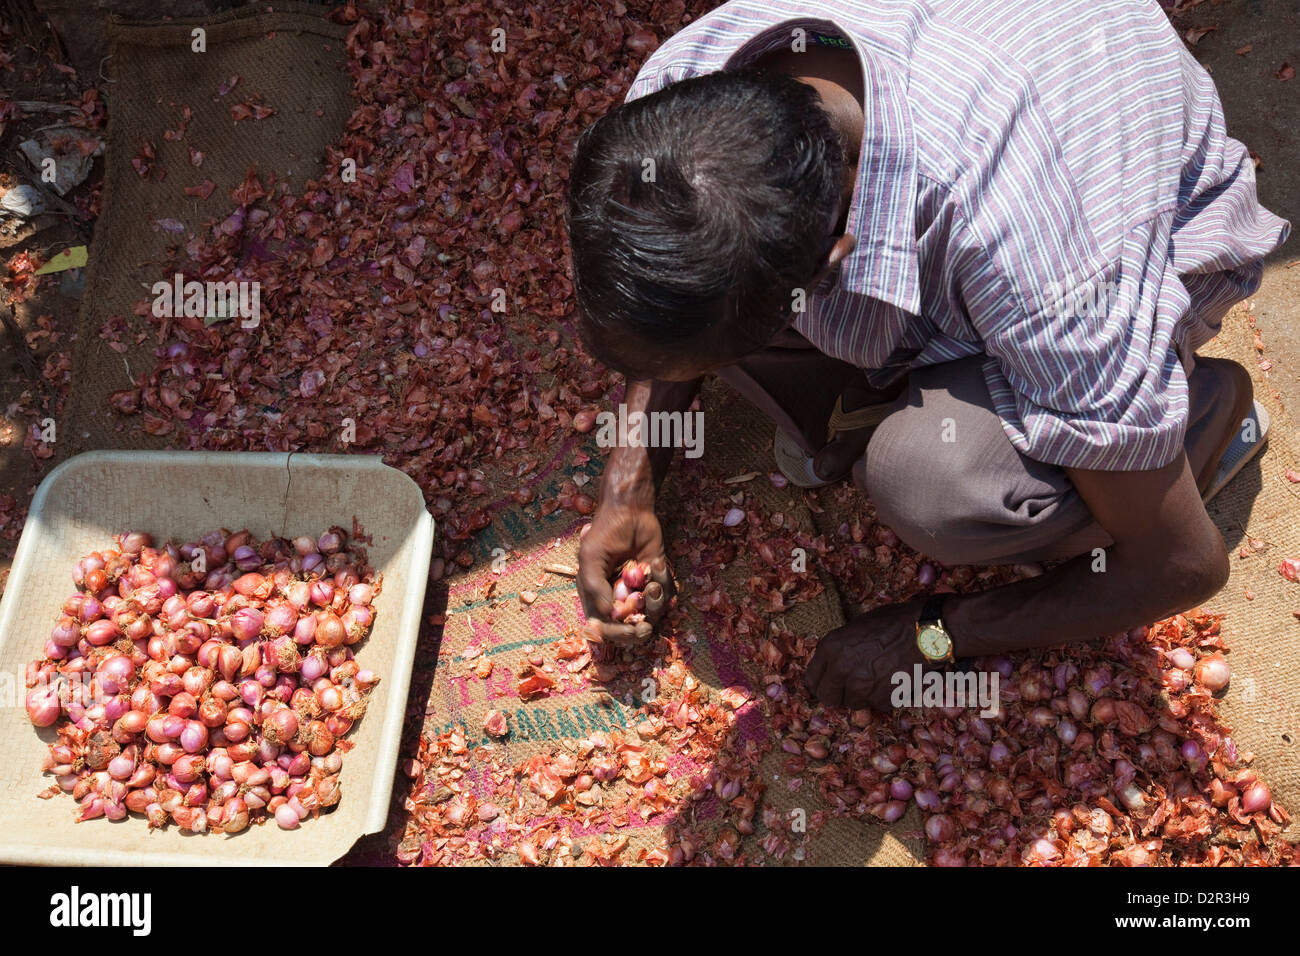 Onion seller sorting his stock on the street in Munnar, Kerala, India, Asia - Stock Image